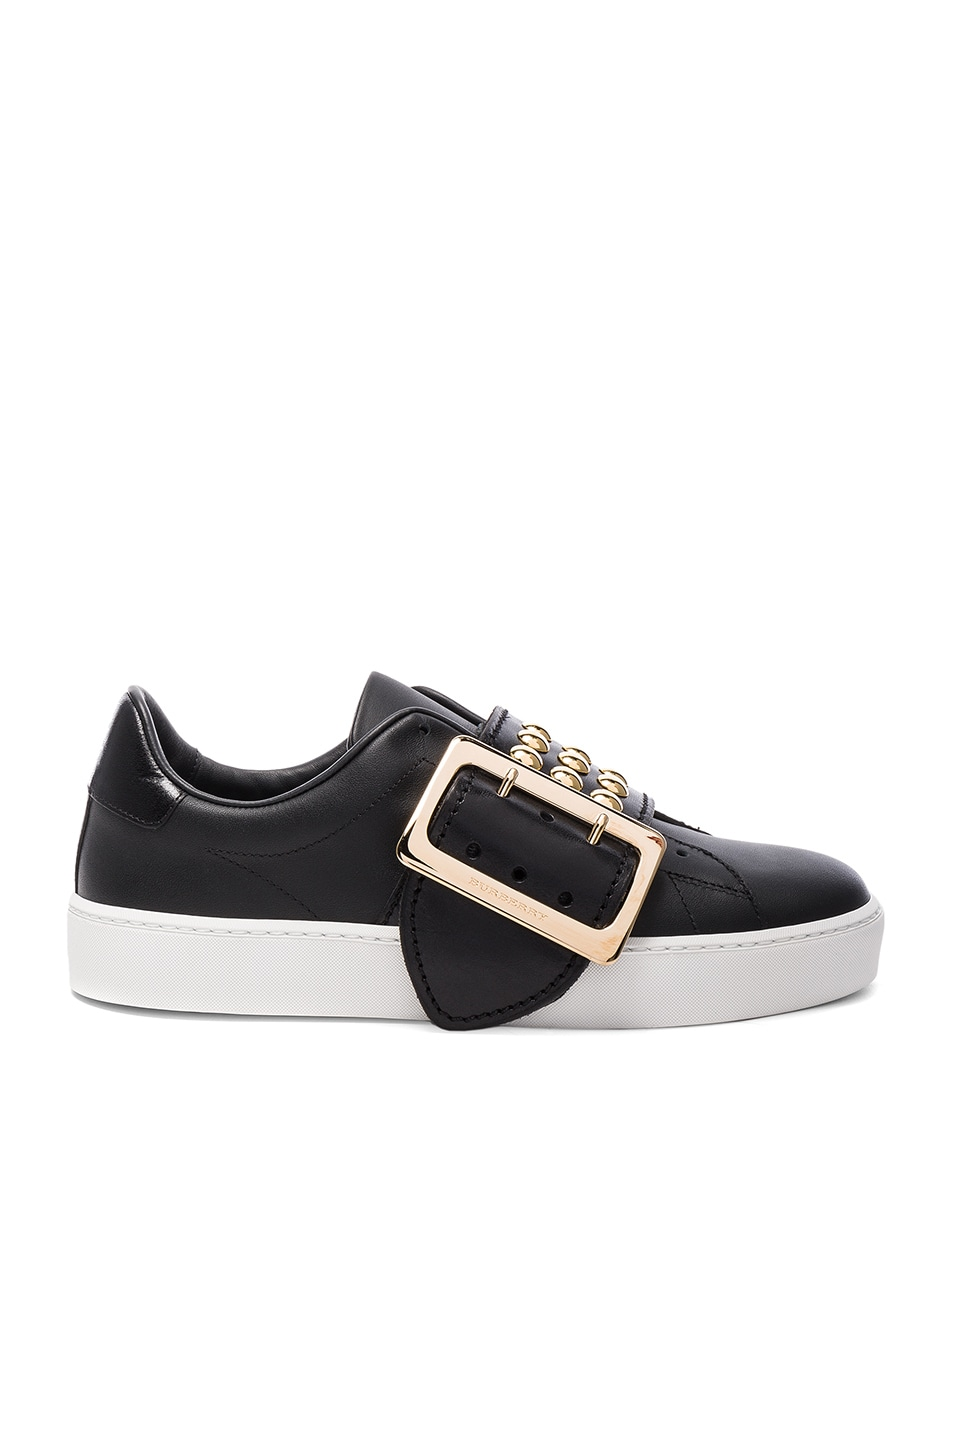 Image 1 of Burberry Studded Leather Westford Sneakers in Black